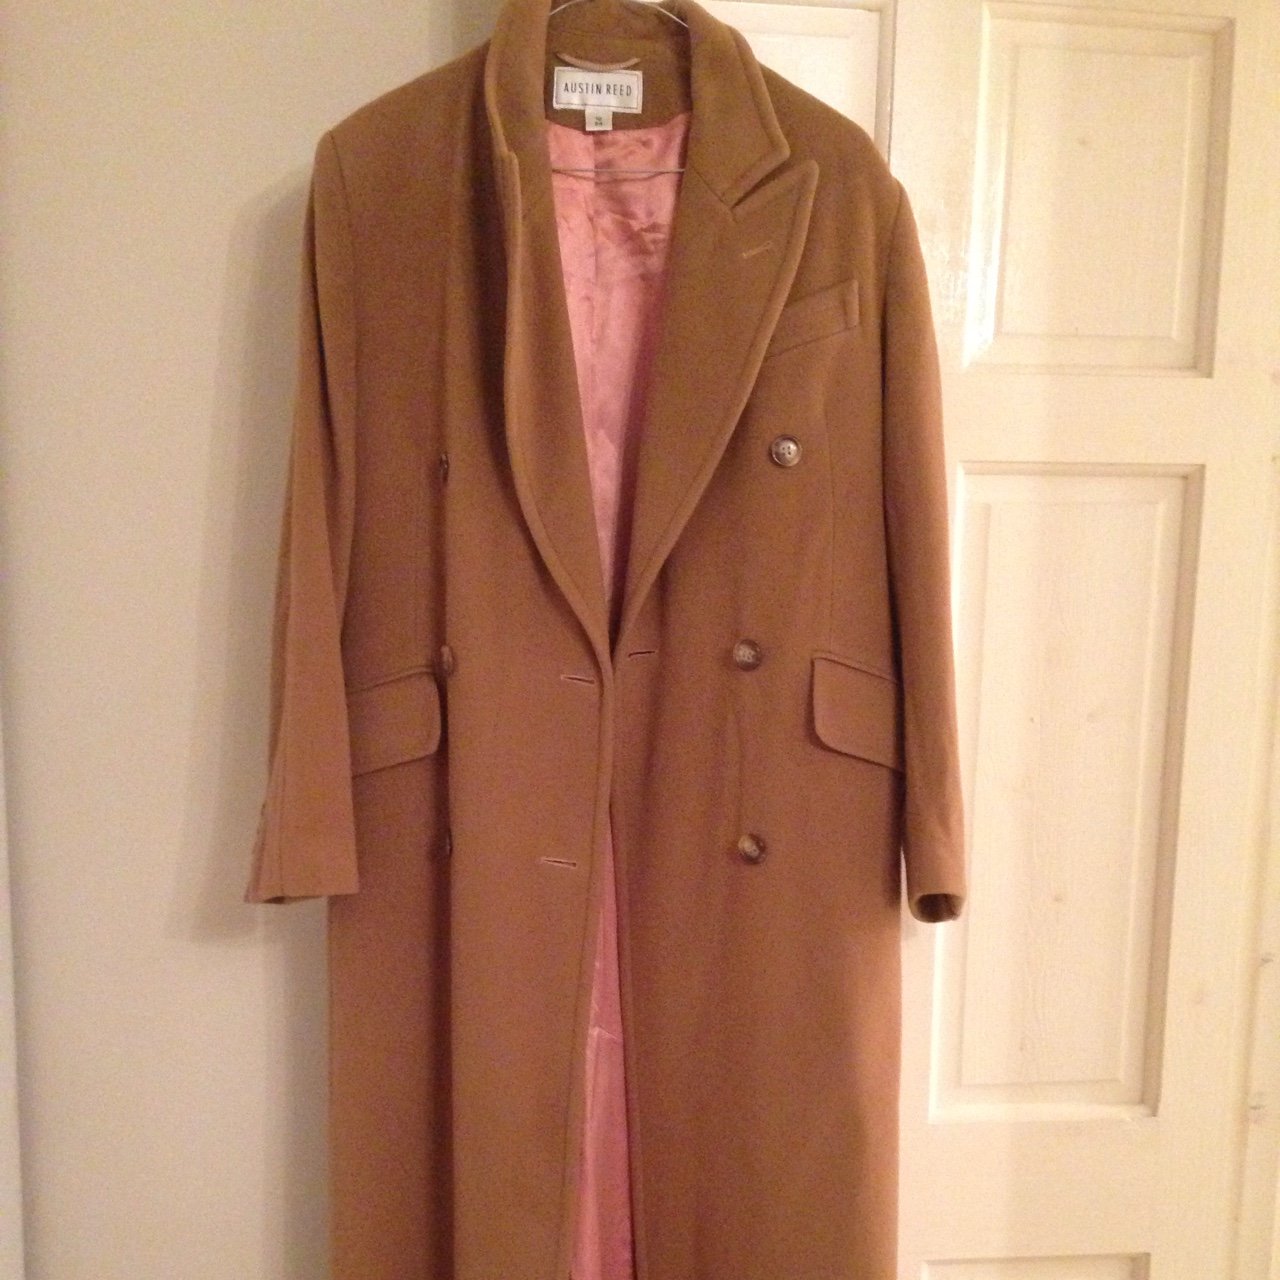 Austin Reed Long Camel Coat Size 10 Second Hand Depop